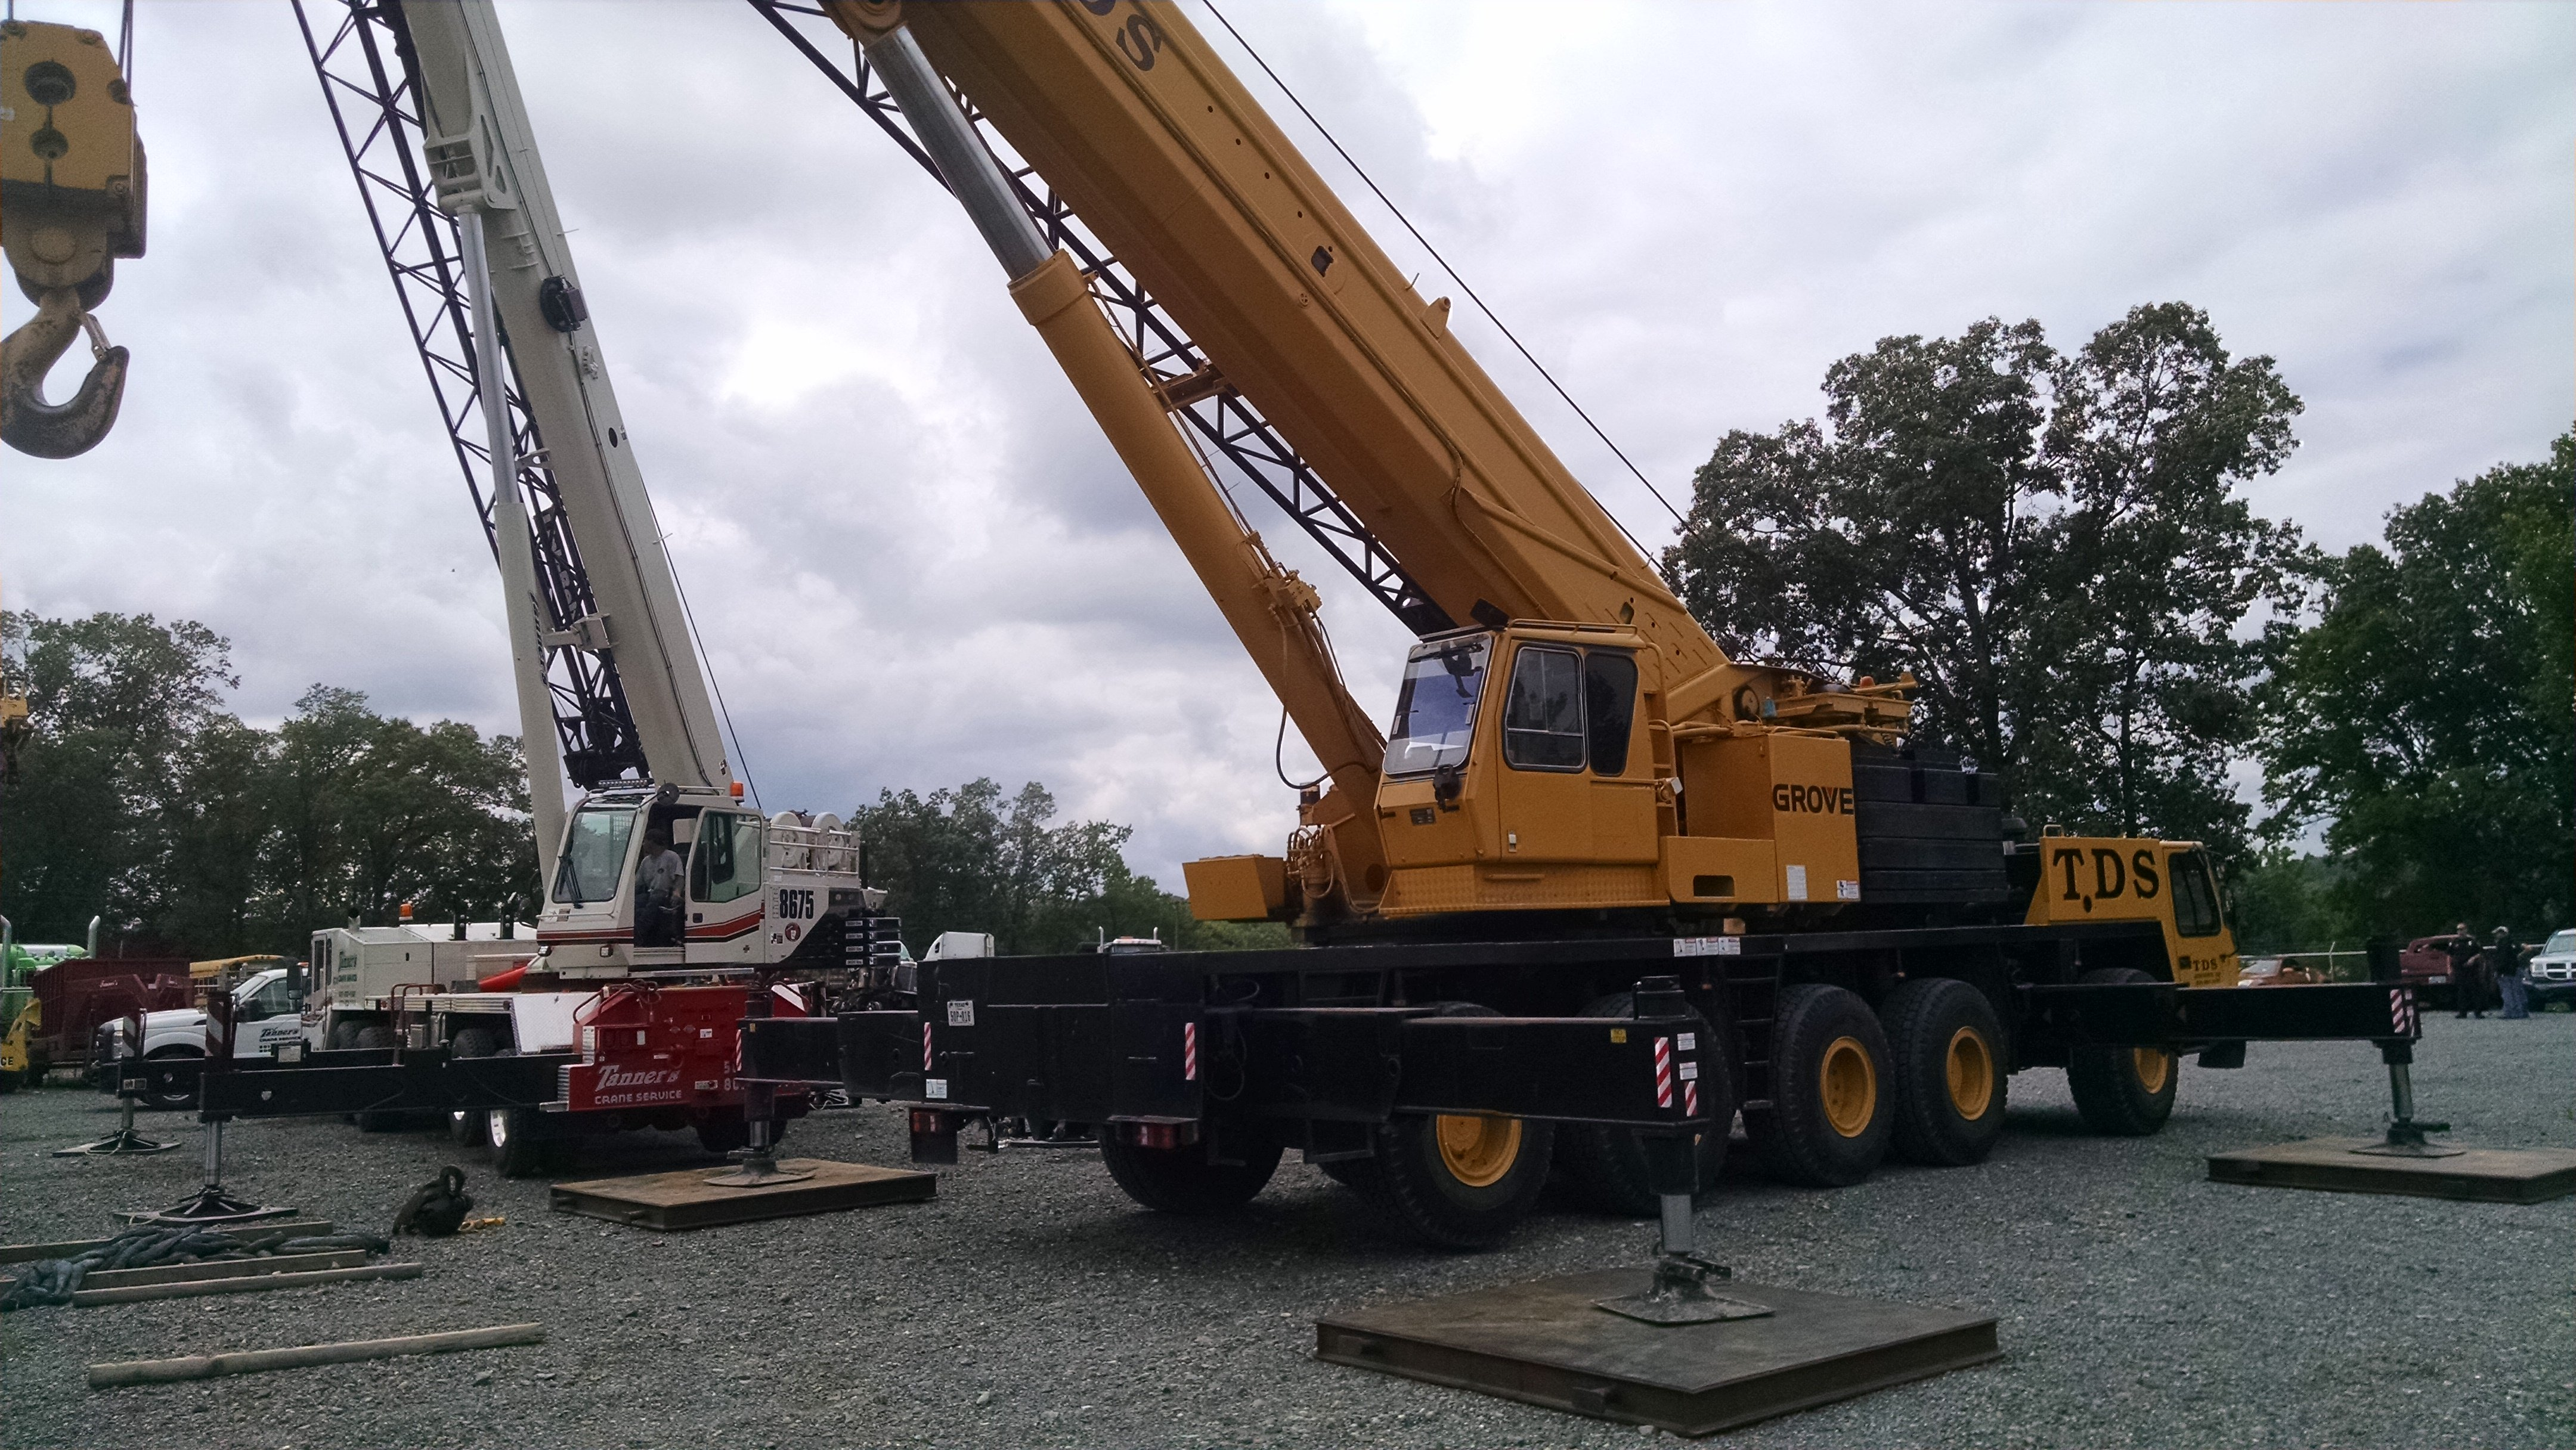 Crane services in Hot Springs, Arkadelphia and Malvern, AR